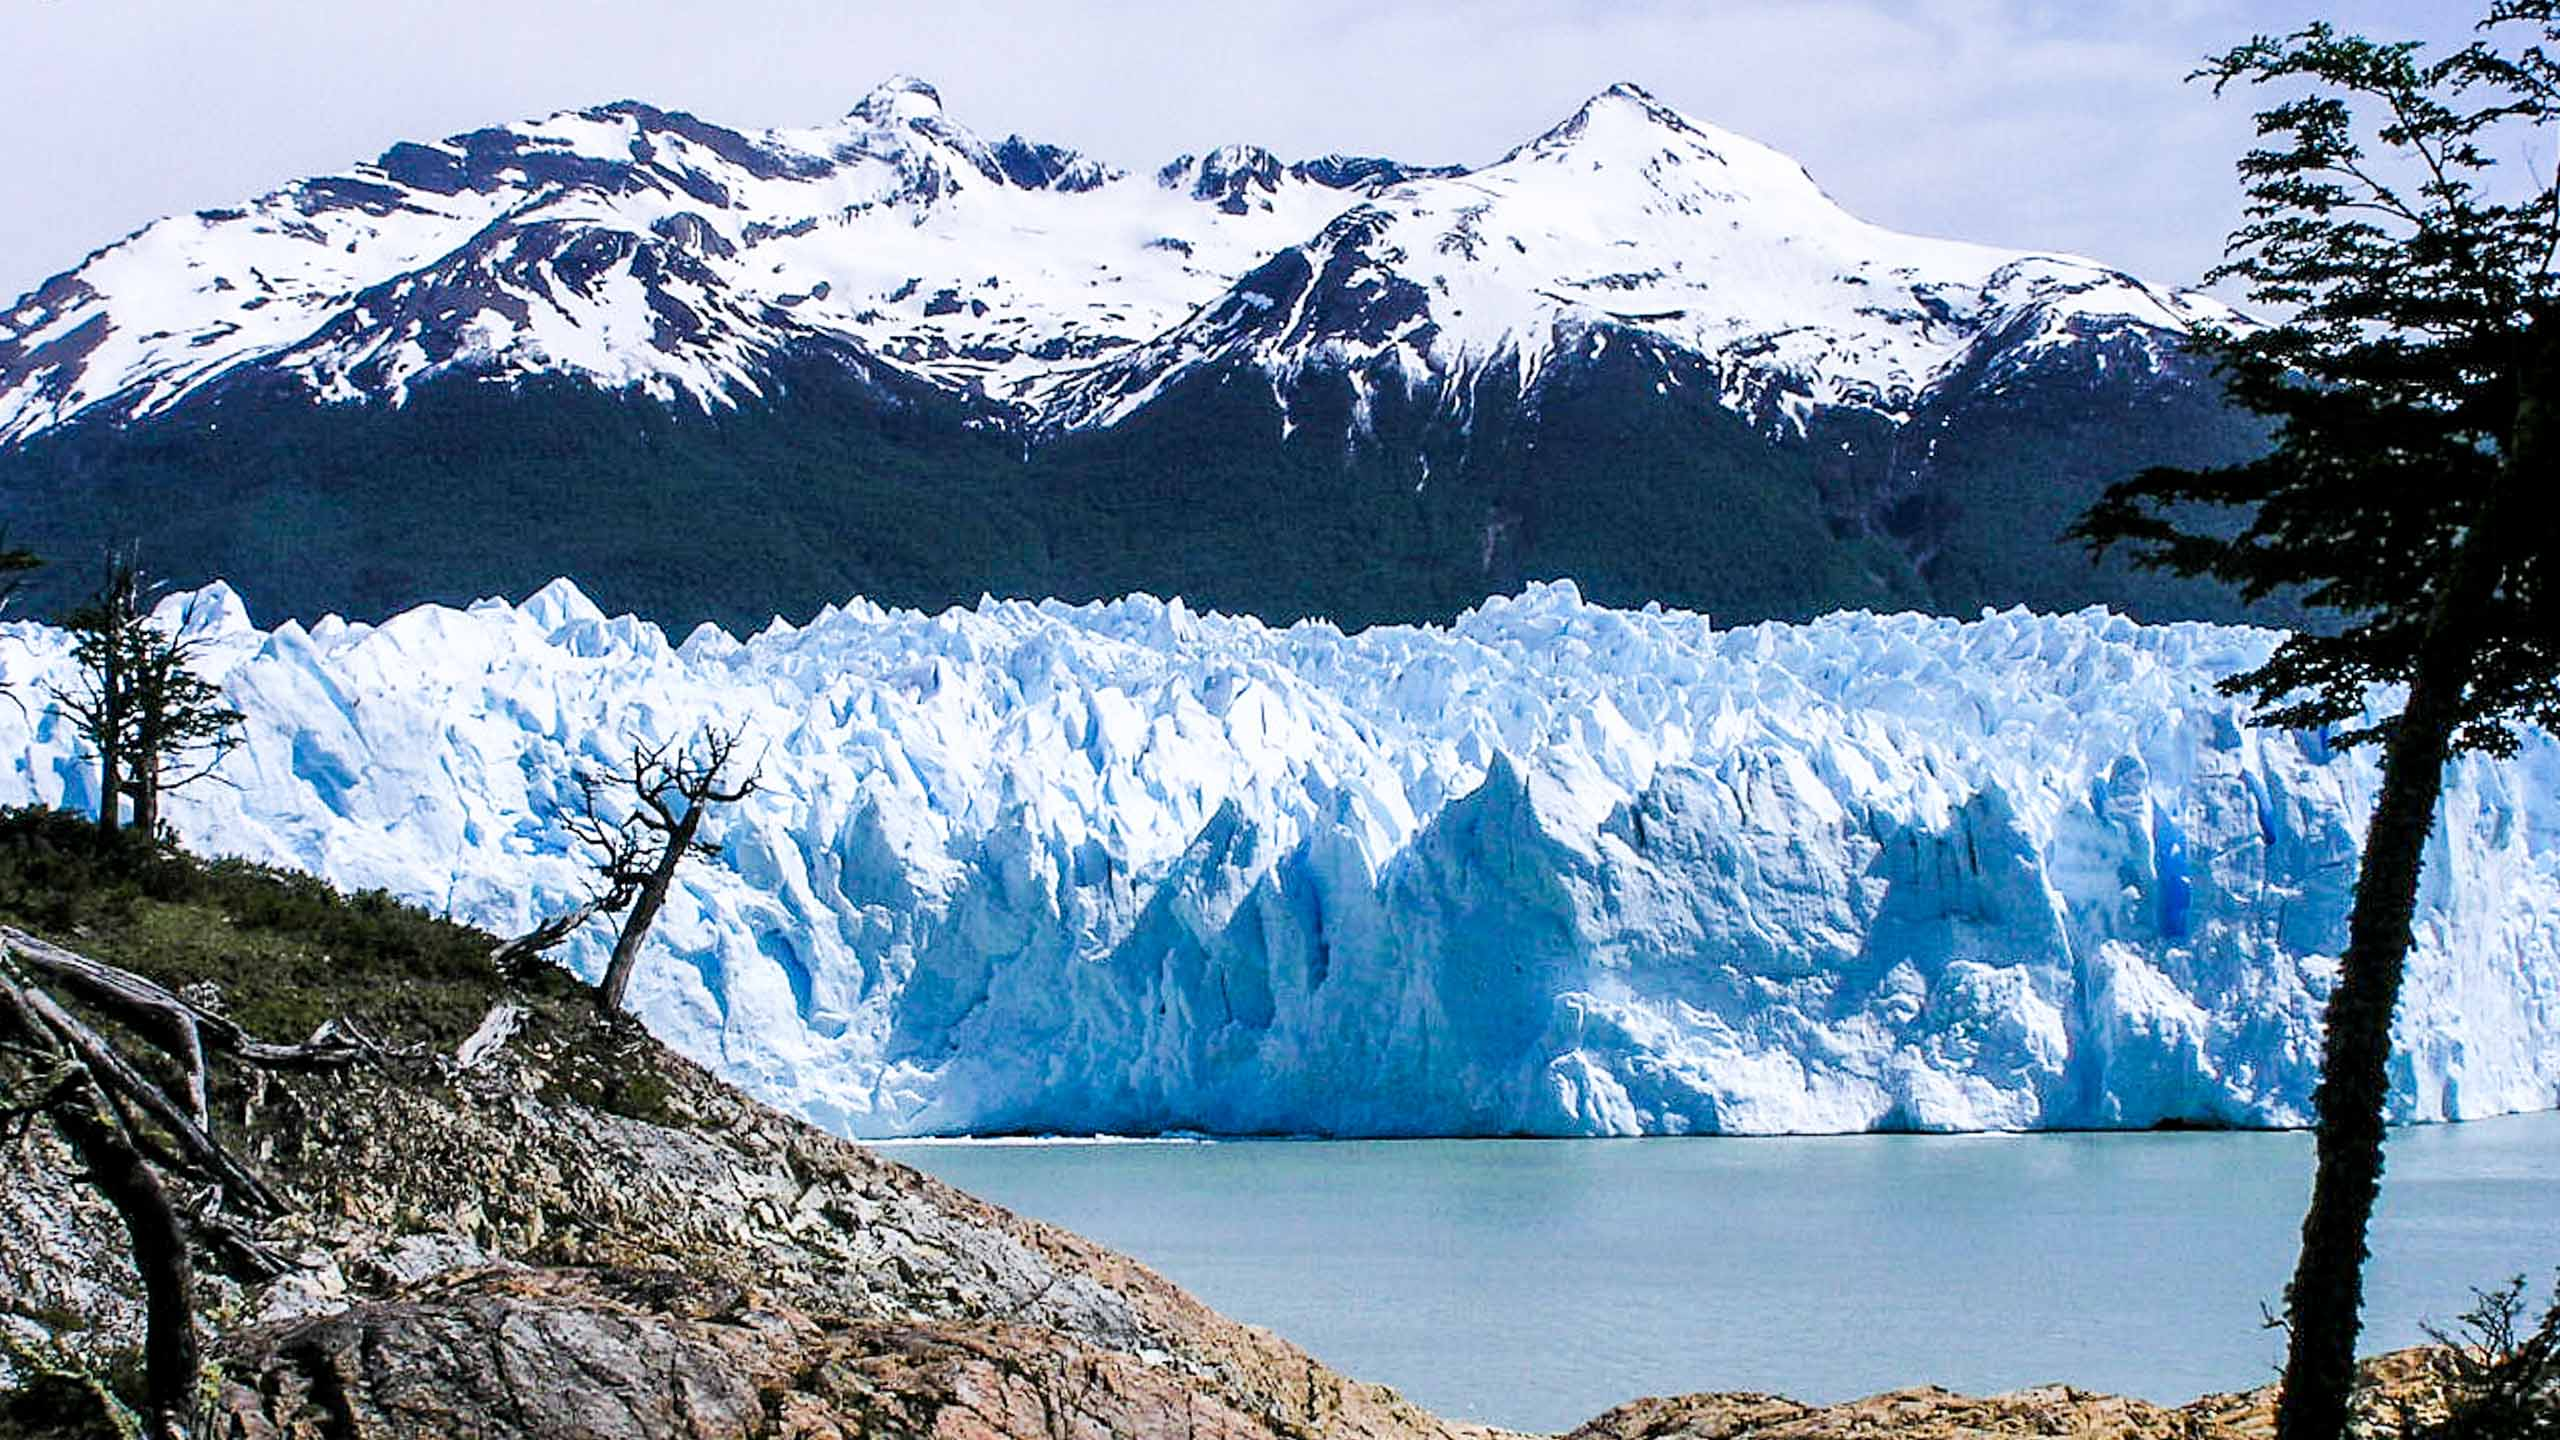 Glacier in front of Argentina mountains